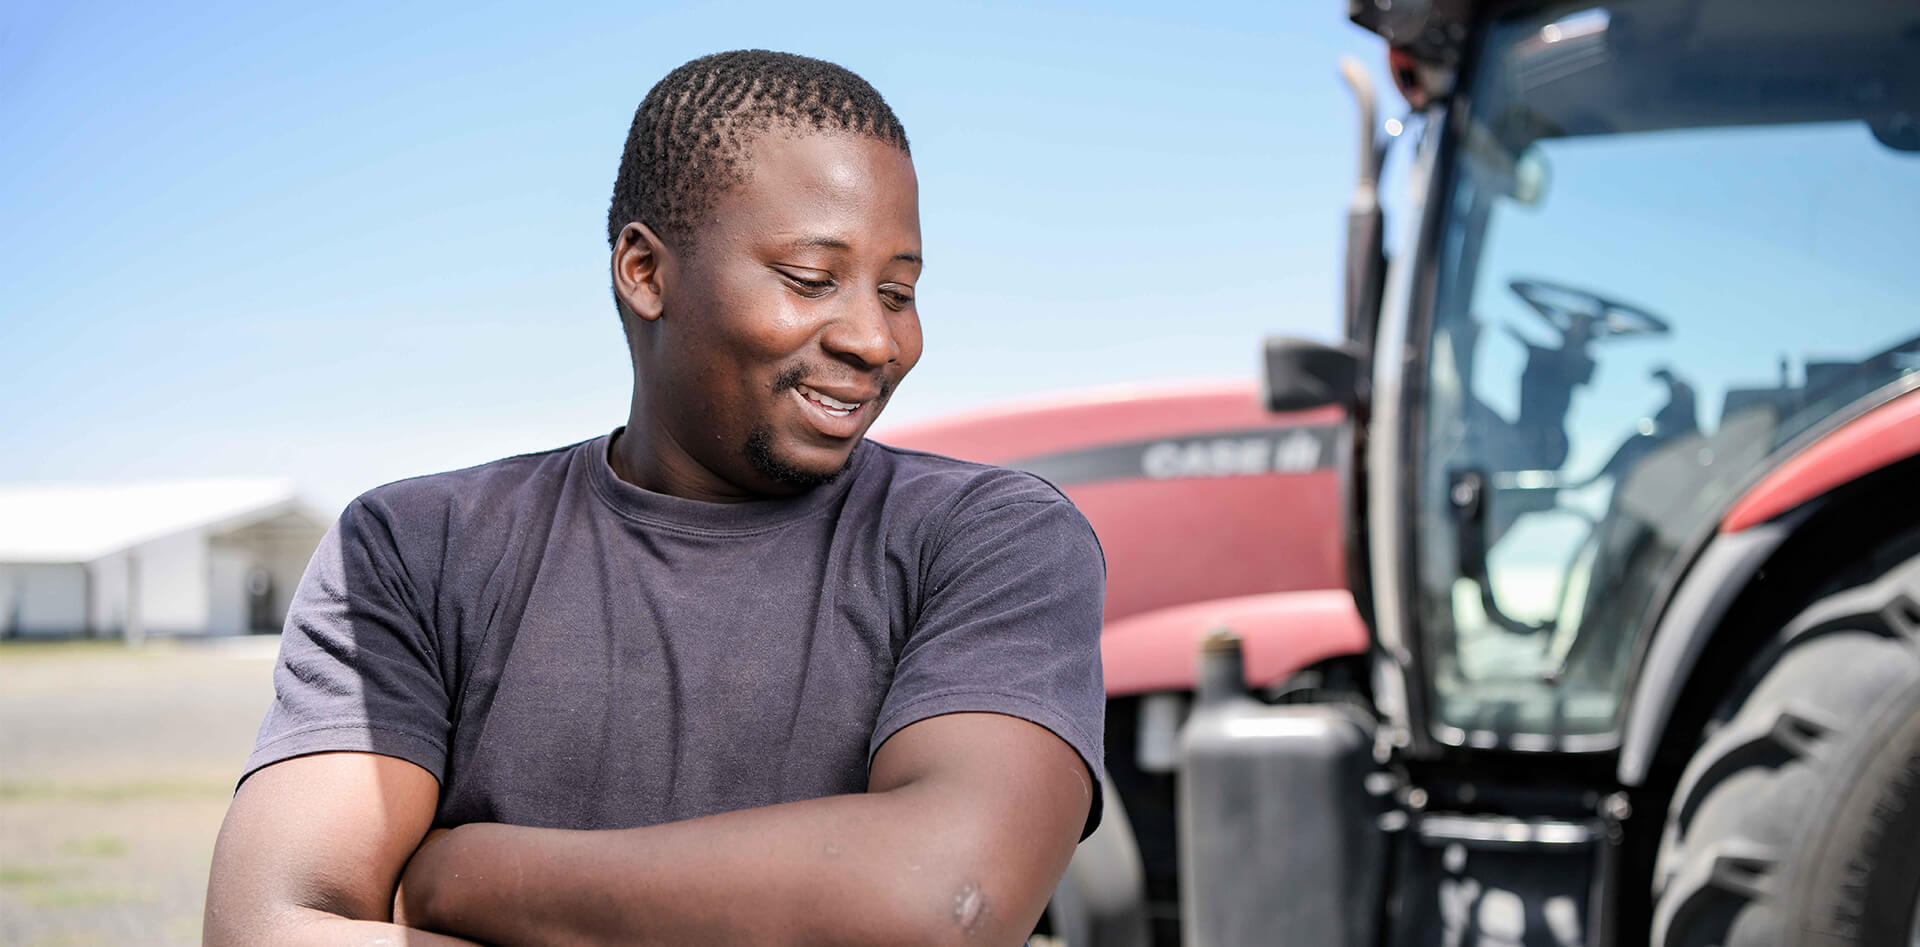 Know Our Food - Zungu: Farm Worker